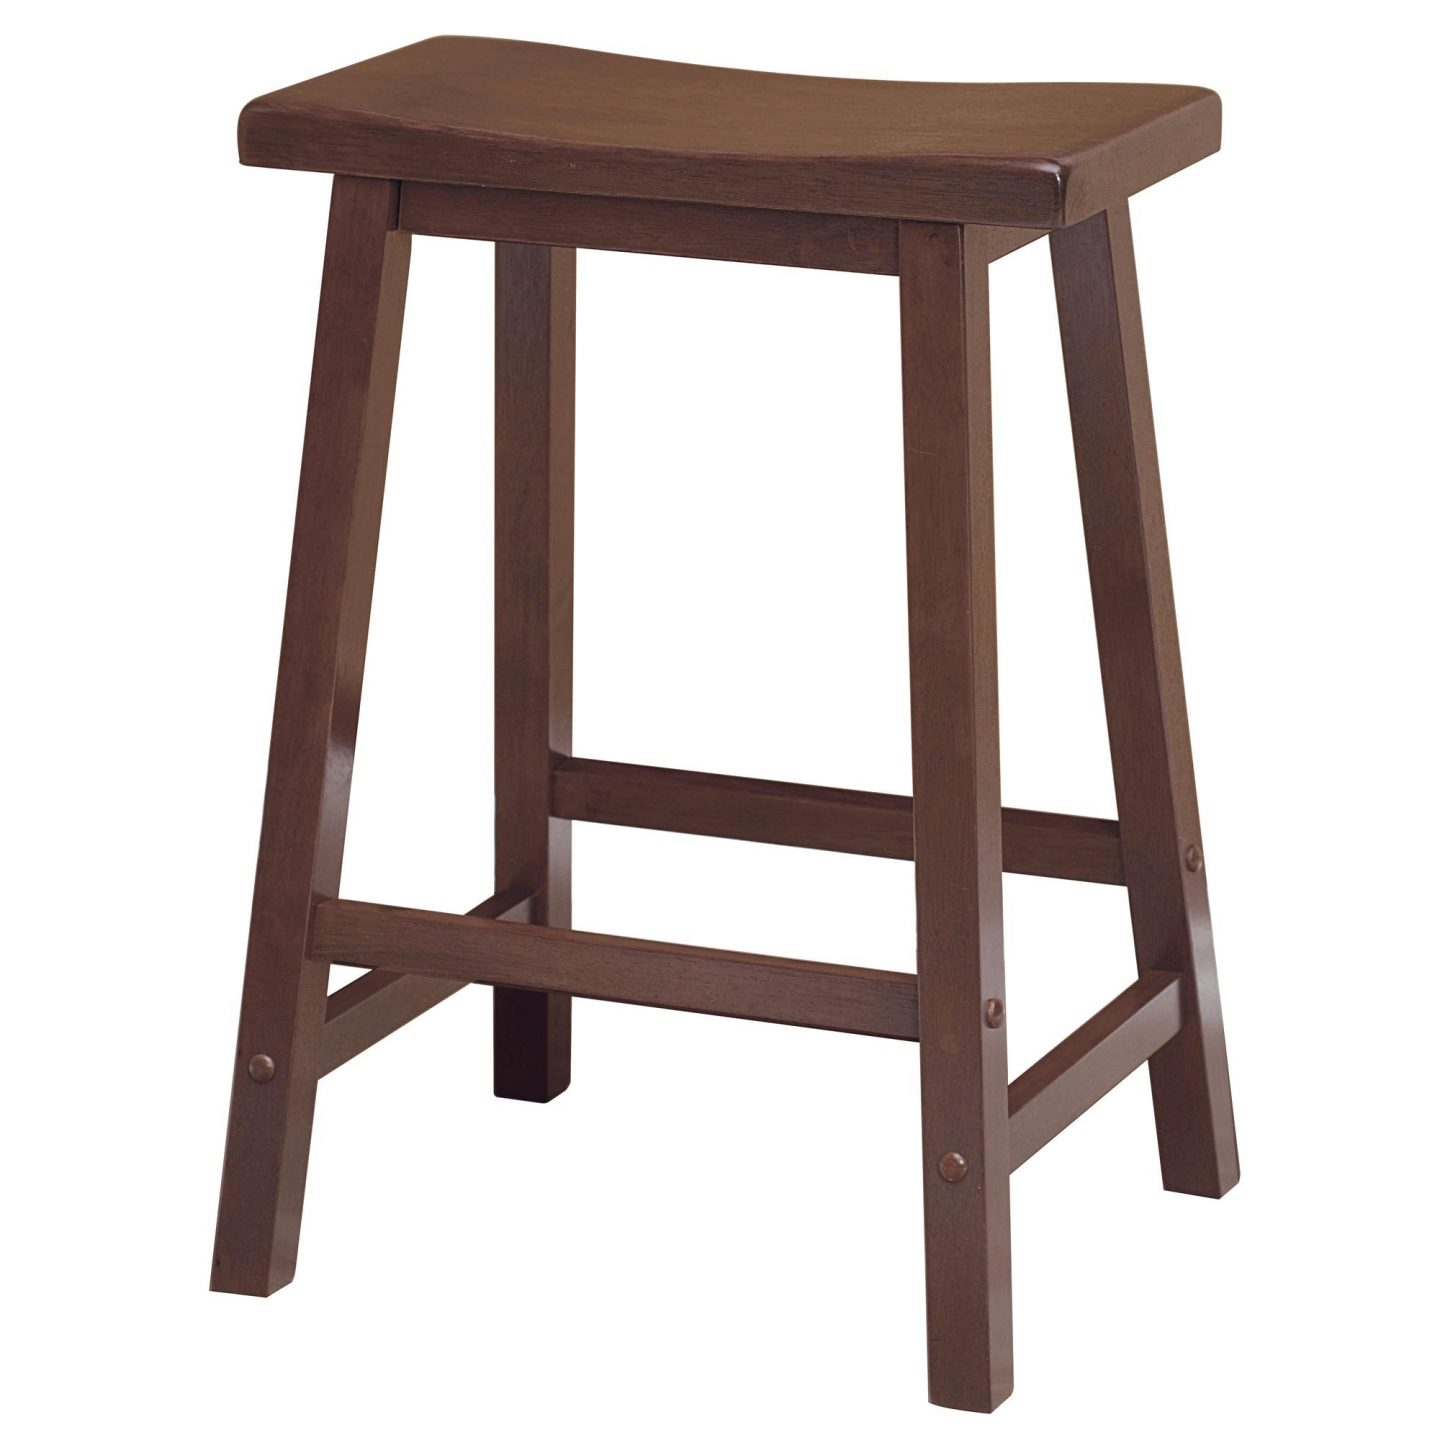 Kitchen Stools Adelaide: Atlas Event & Party Hire